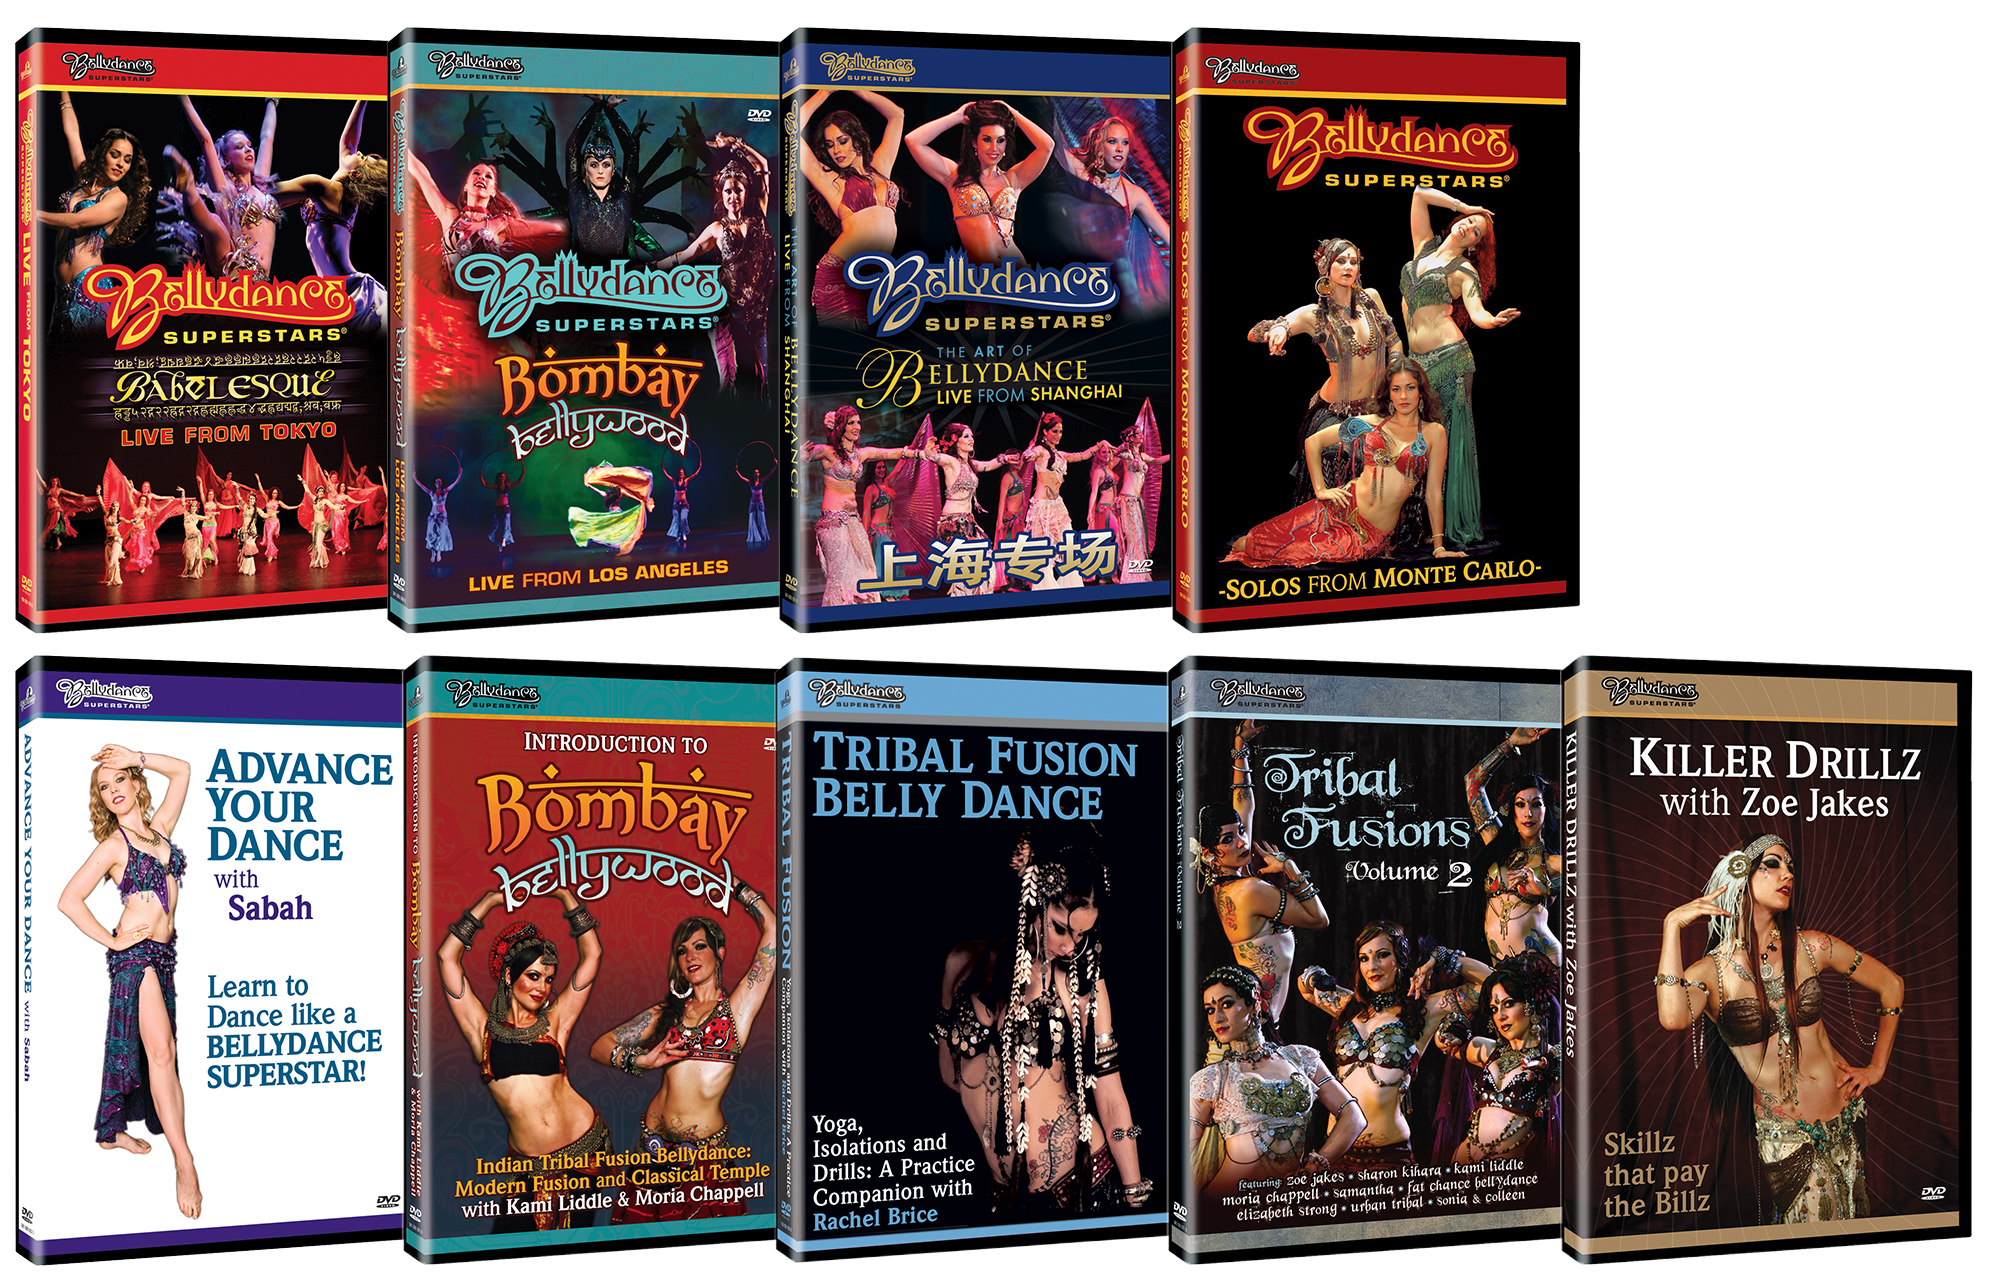 bs-dvds-image-2